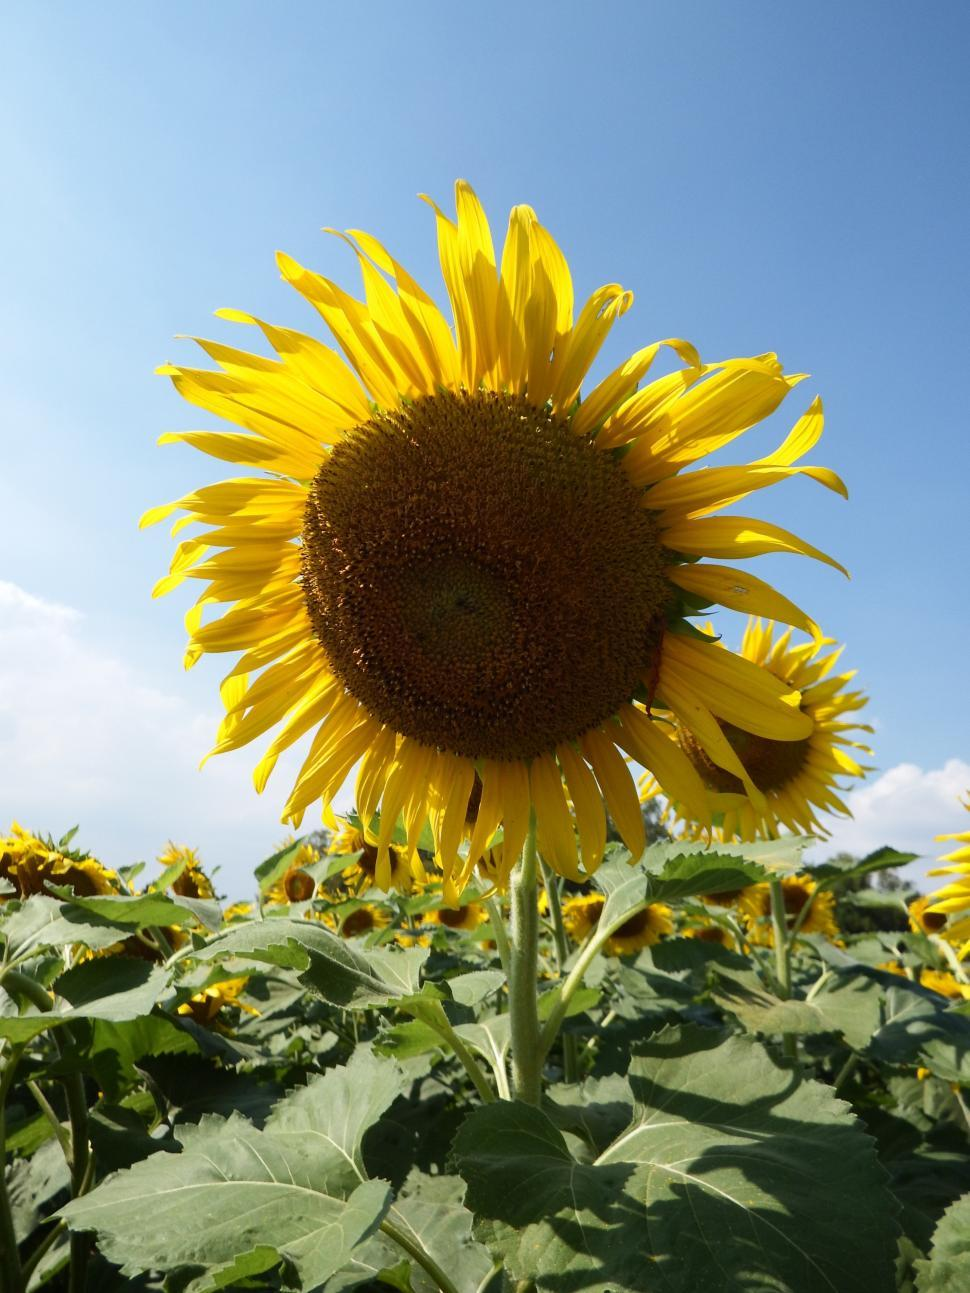 Download Free Stock HD Photo of Single Sunflower on Blue Sky Background  Online